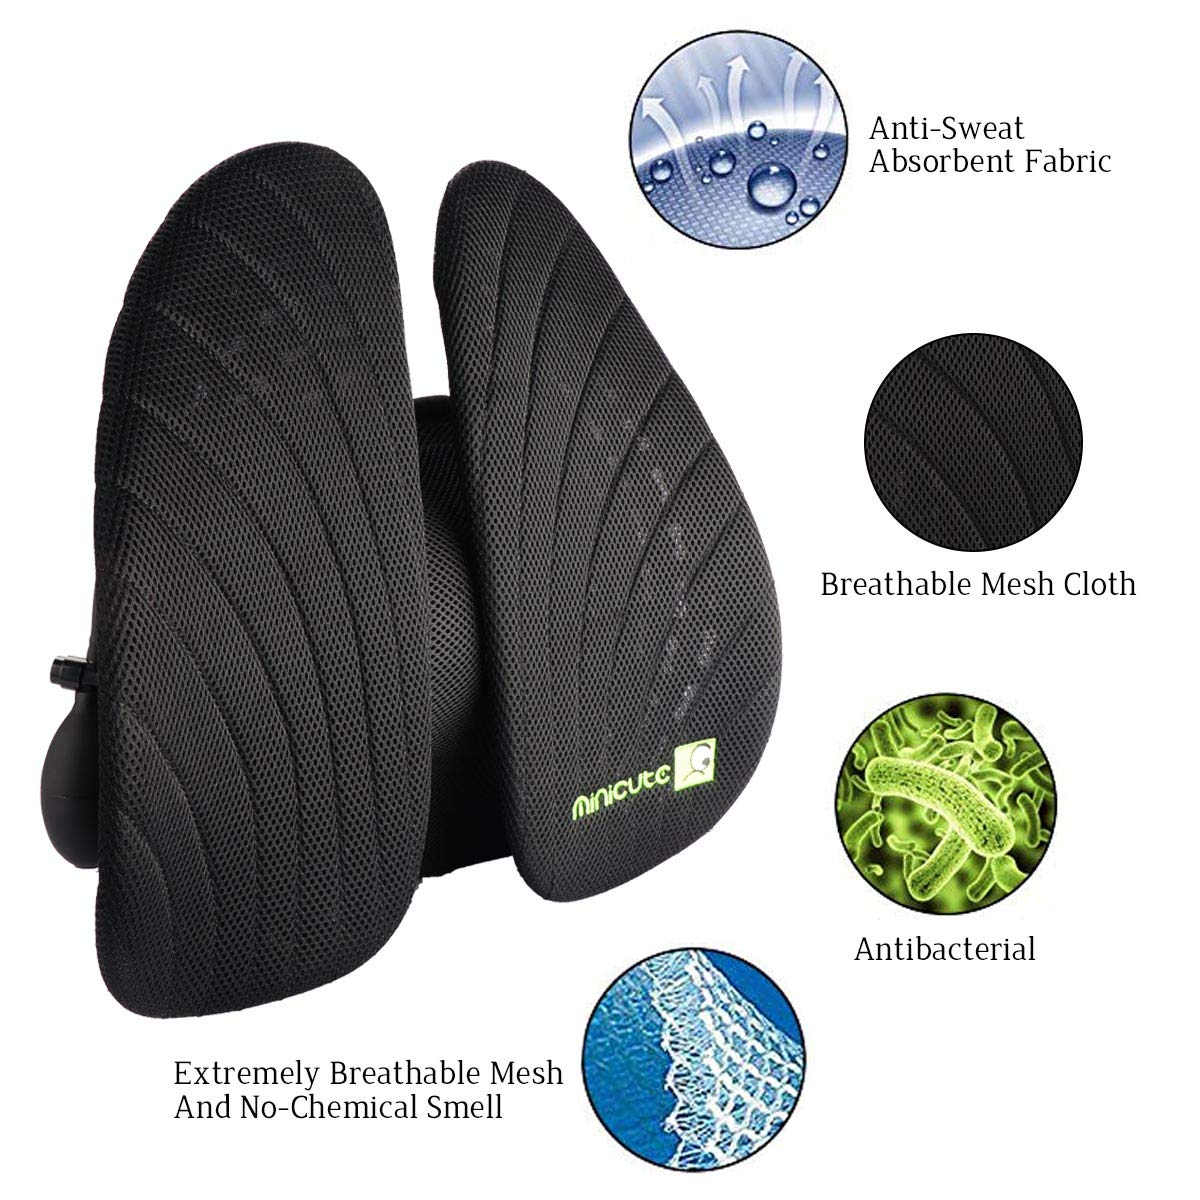 Minicute Lumbar Support Pillows Mesh Backrest Inflatable Air Back Support Cushion Ergonomic Pain Relief for Office Desk Chair Car Seats Airplane Couch Sofa